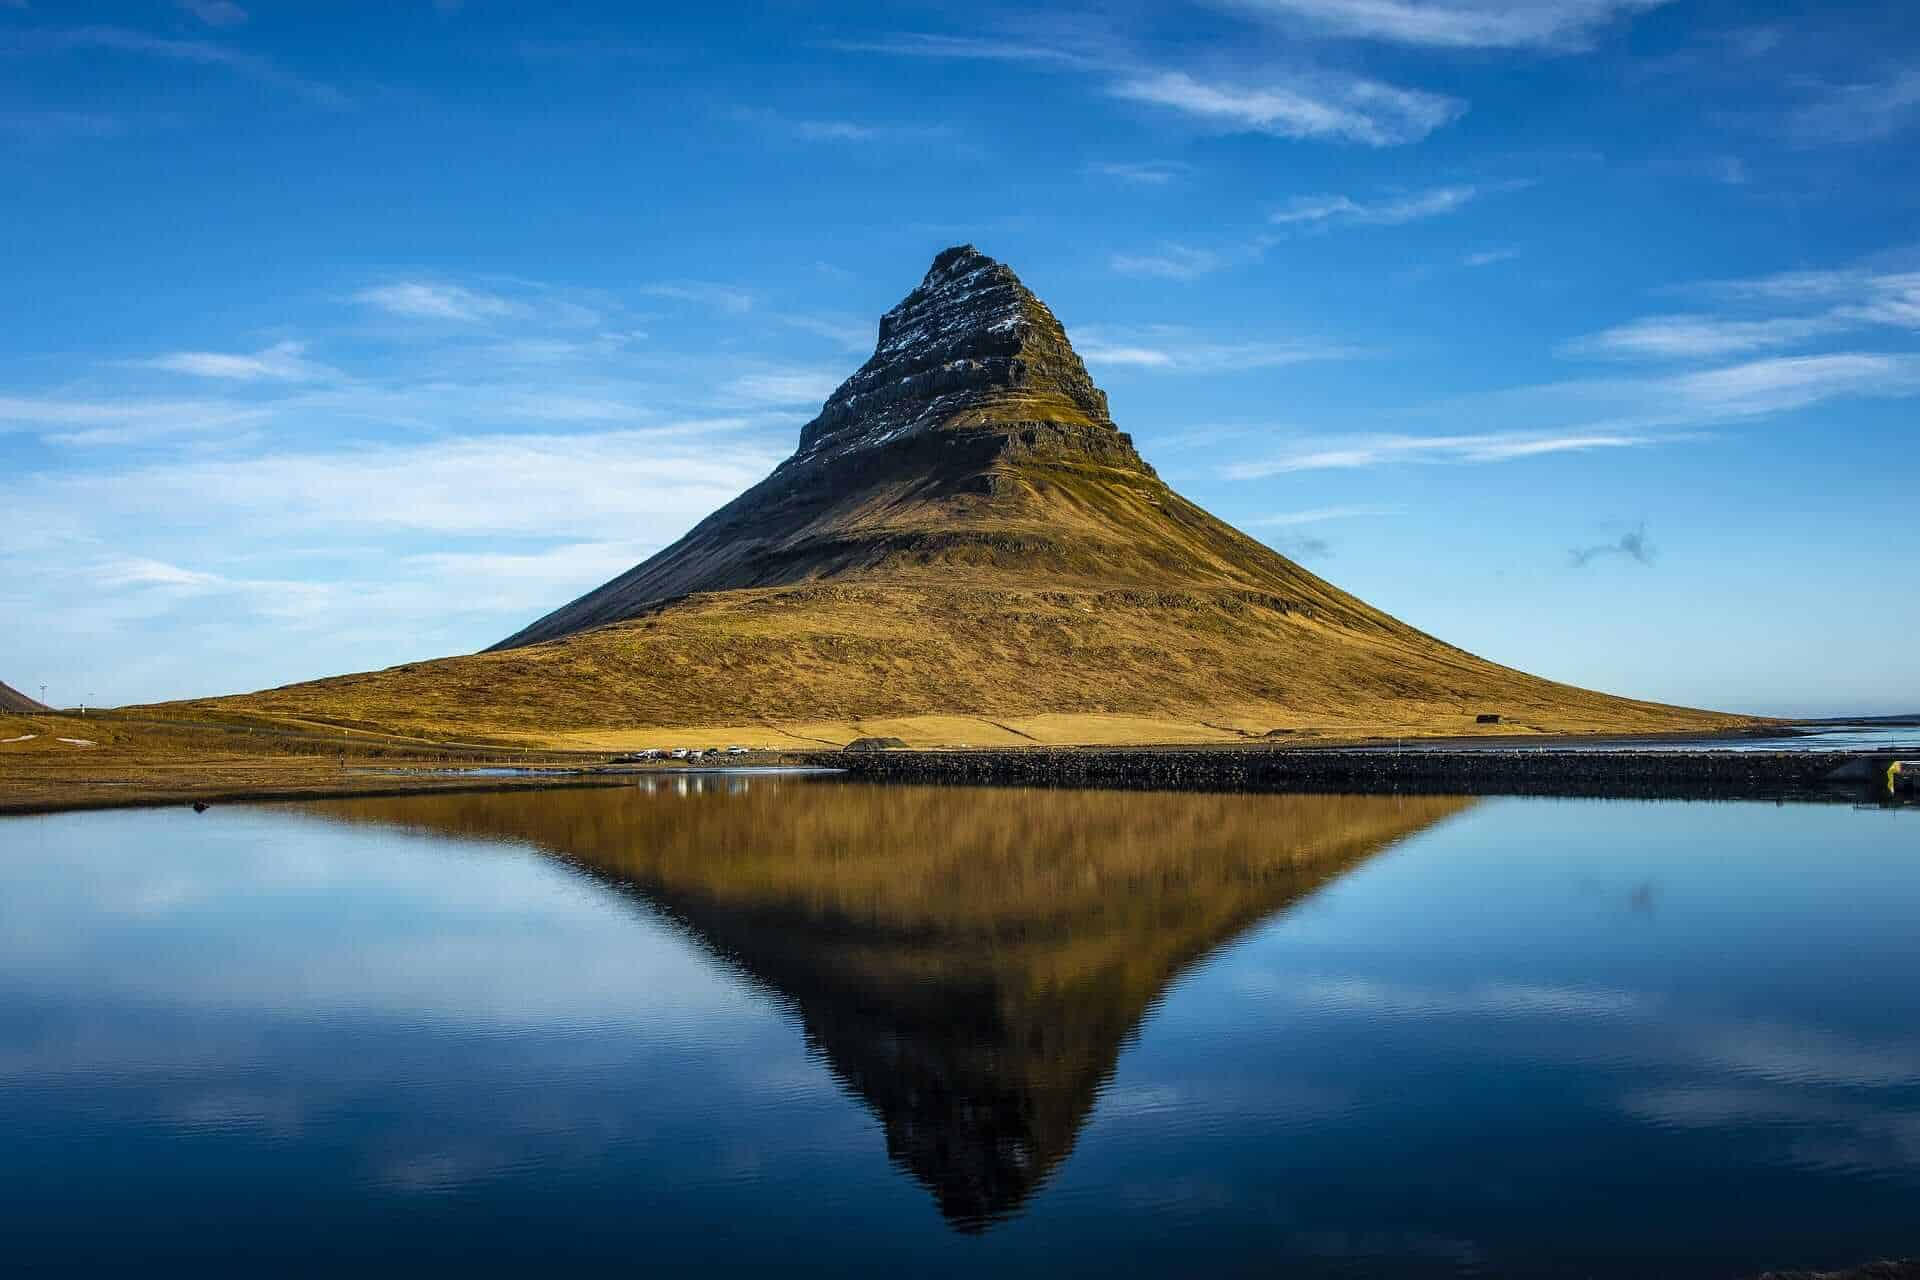 Game of Thrones Locations - Kirkjufell, Iceland